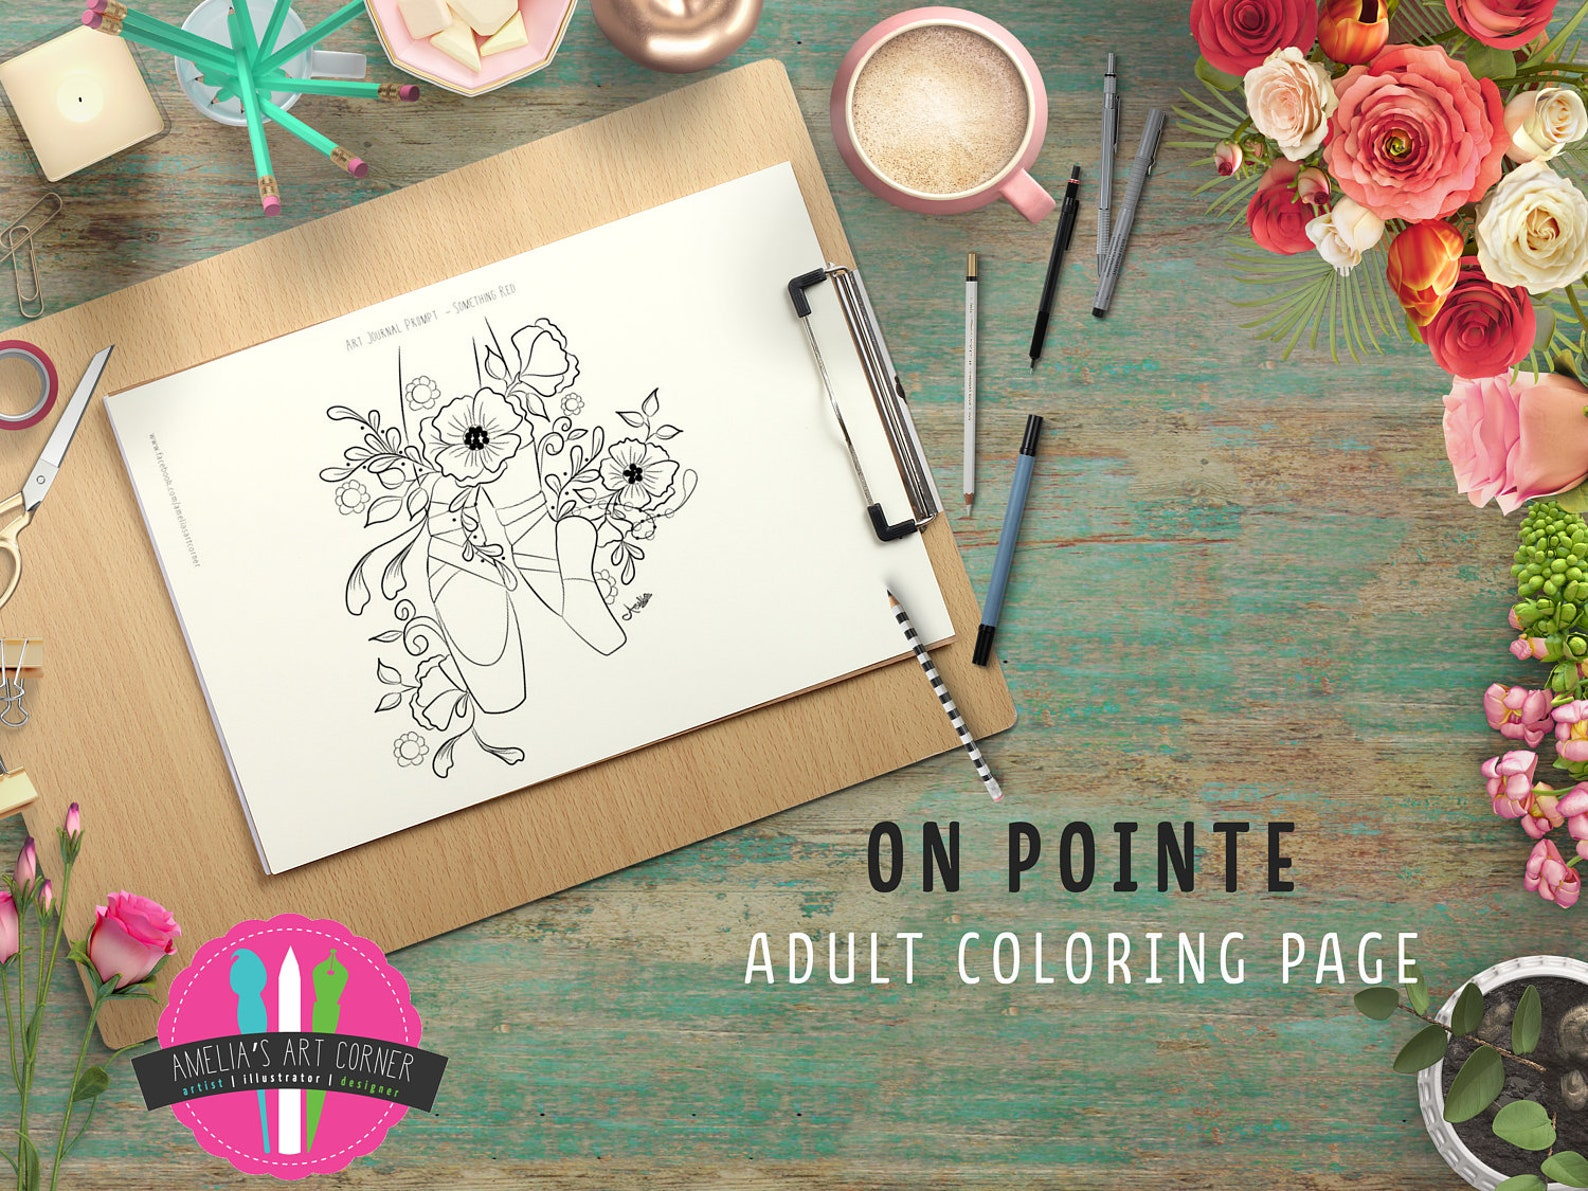 ballet pointe shoes adult coloring page - printable ballet colouring page - downloadable floral ballet coloring page